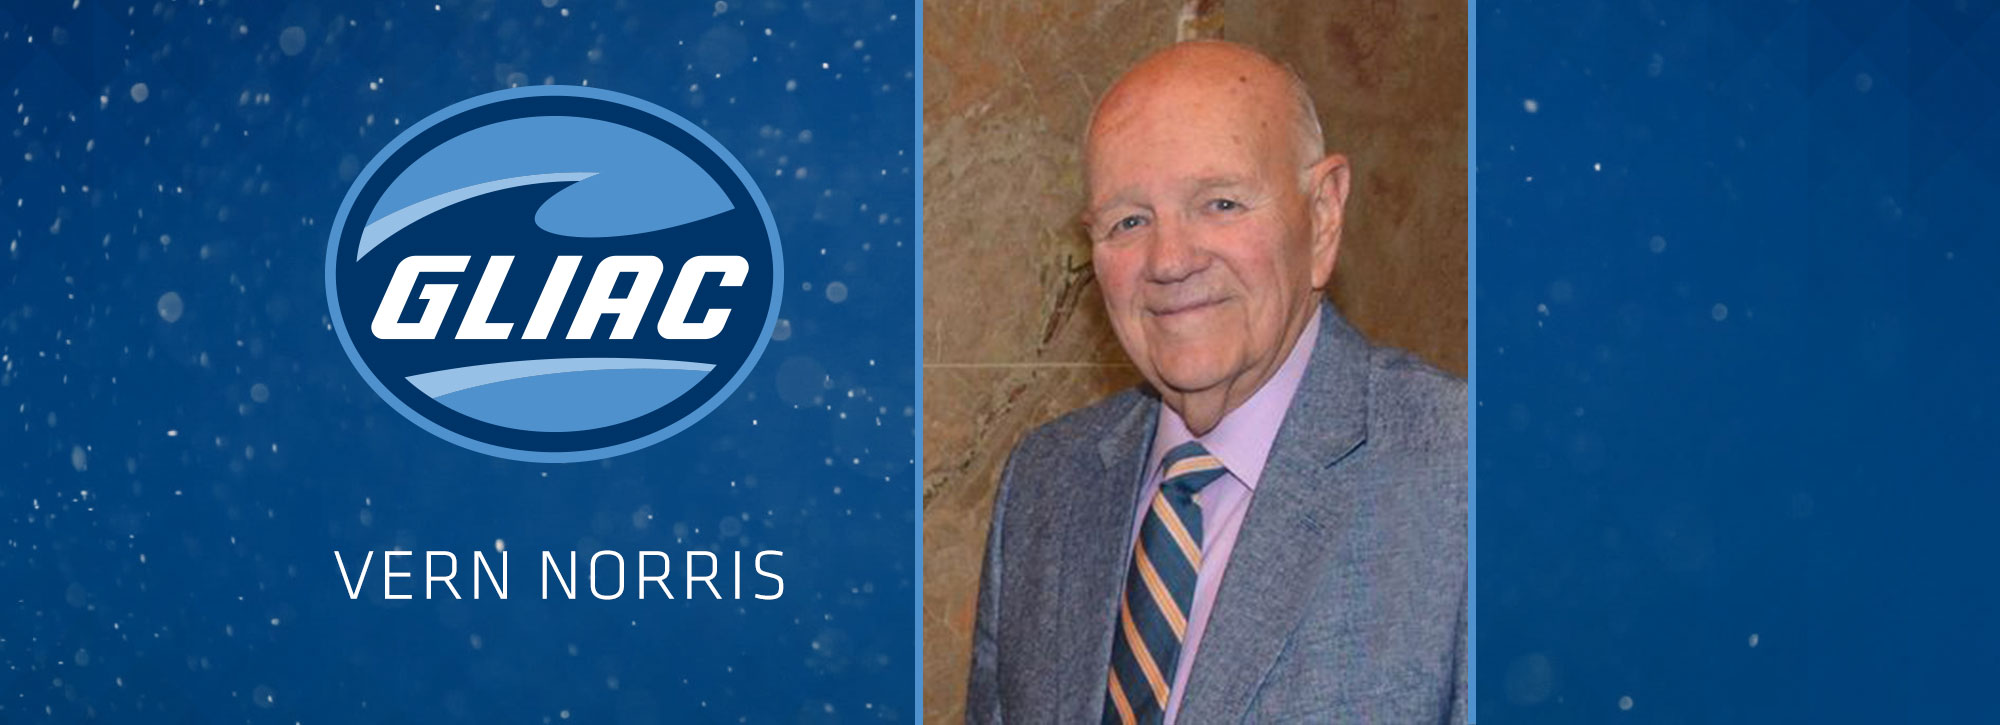 Former GLIAC Commissioner Vern Norris Passes at 89